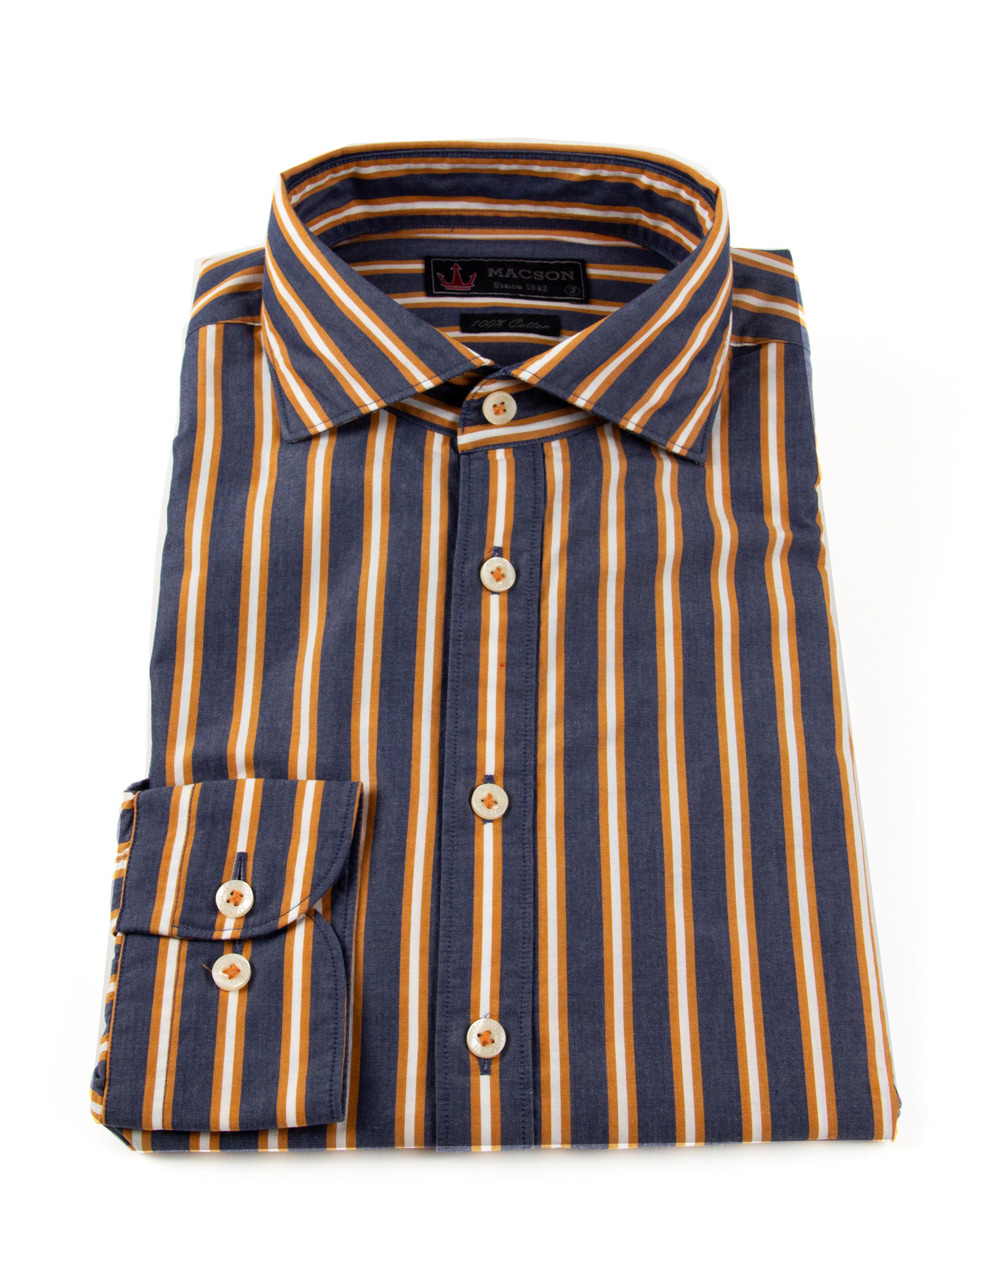 Blue and orange striped shirt - Backside